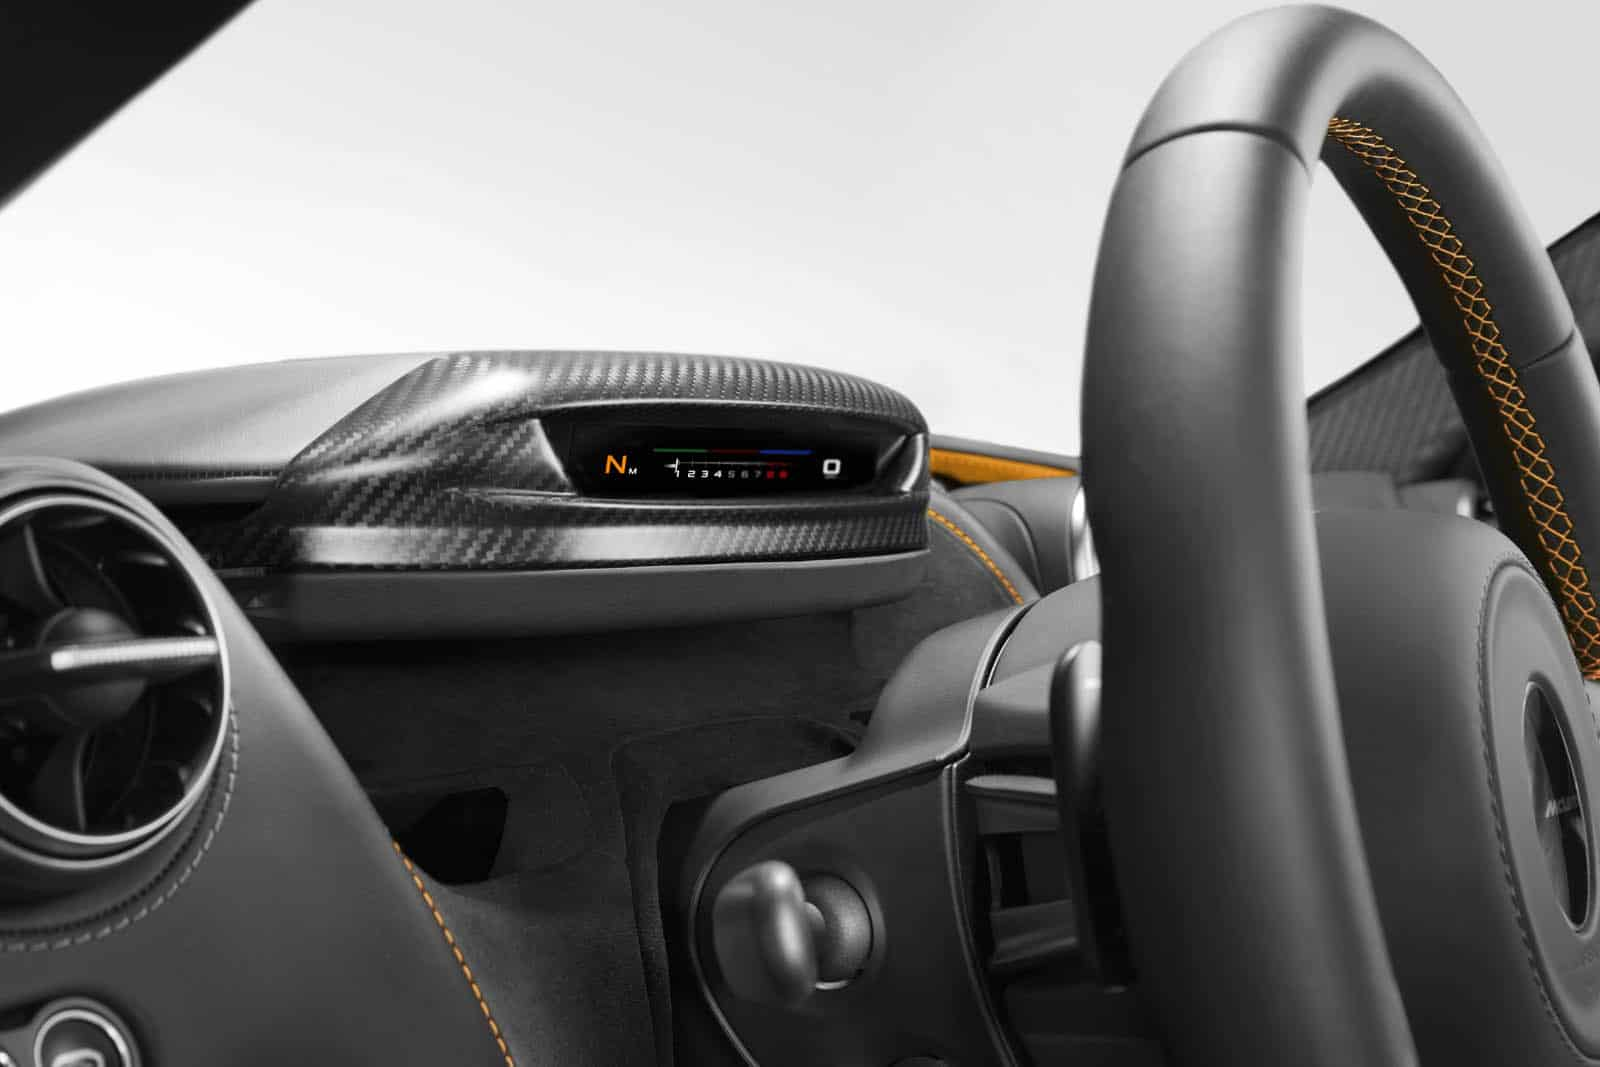 P14 Folding Driver Display Image Down_final_release date 010317 copy